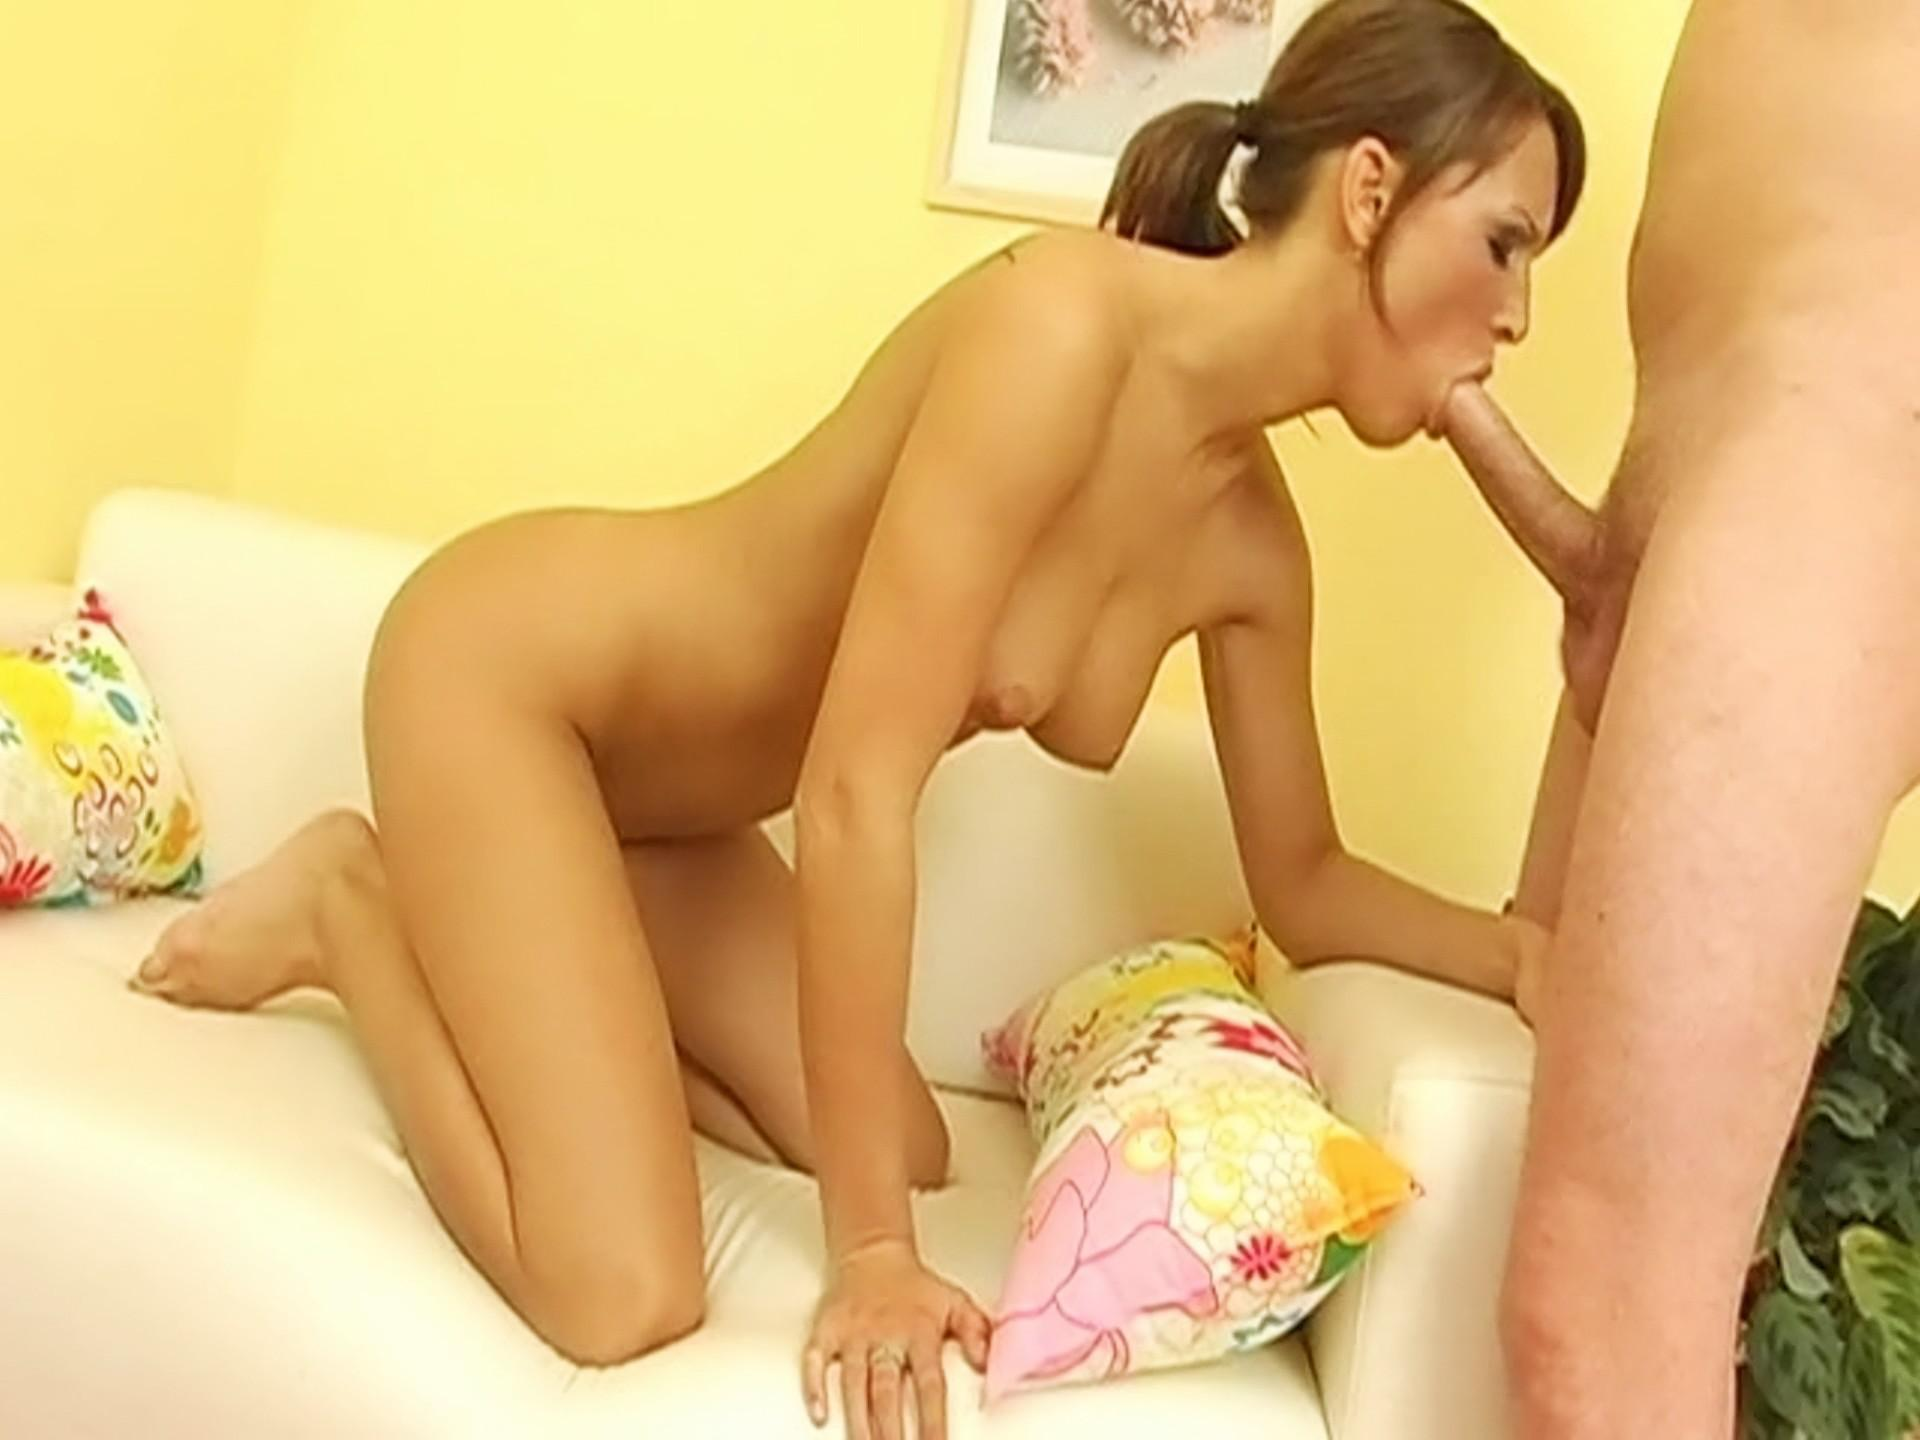 Yong hardcore amateur sex asuka sex dirty